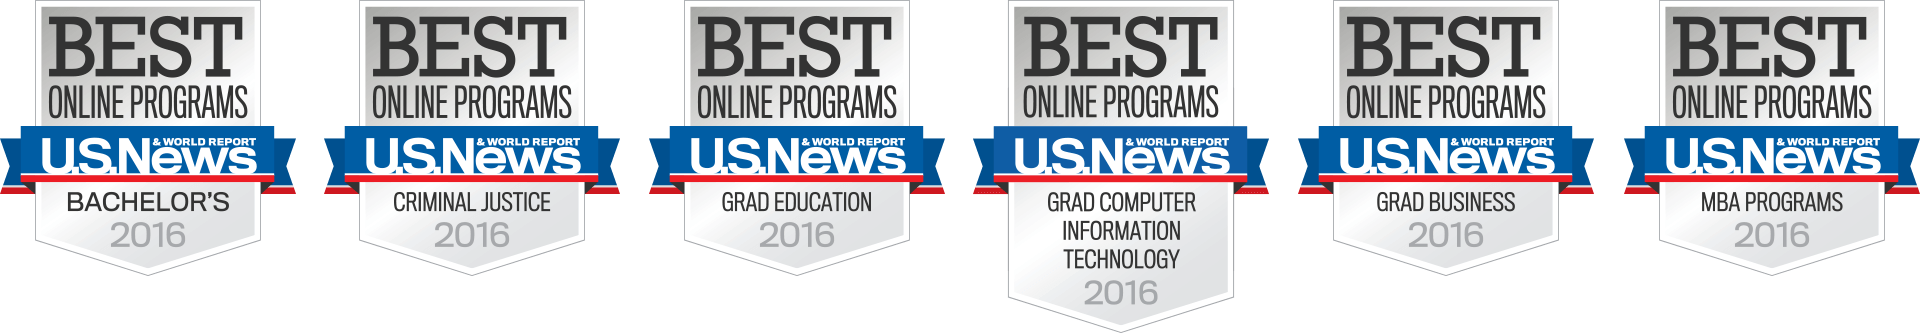 SHSU Online Ranked Highly in Annual US News and World Report Rankings